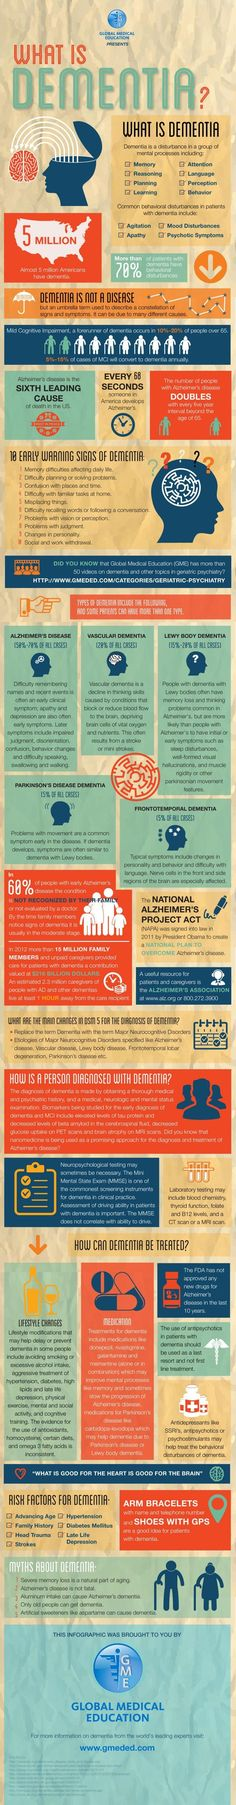 Facts and myths about dementia everyone should know. #elderlycare